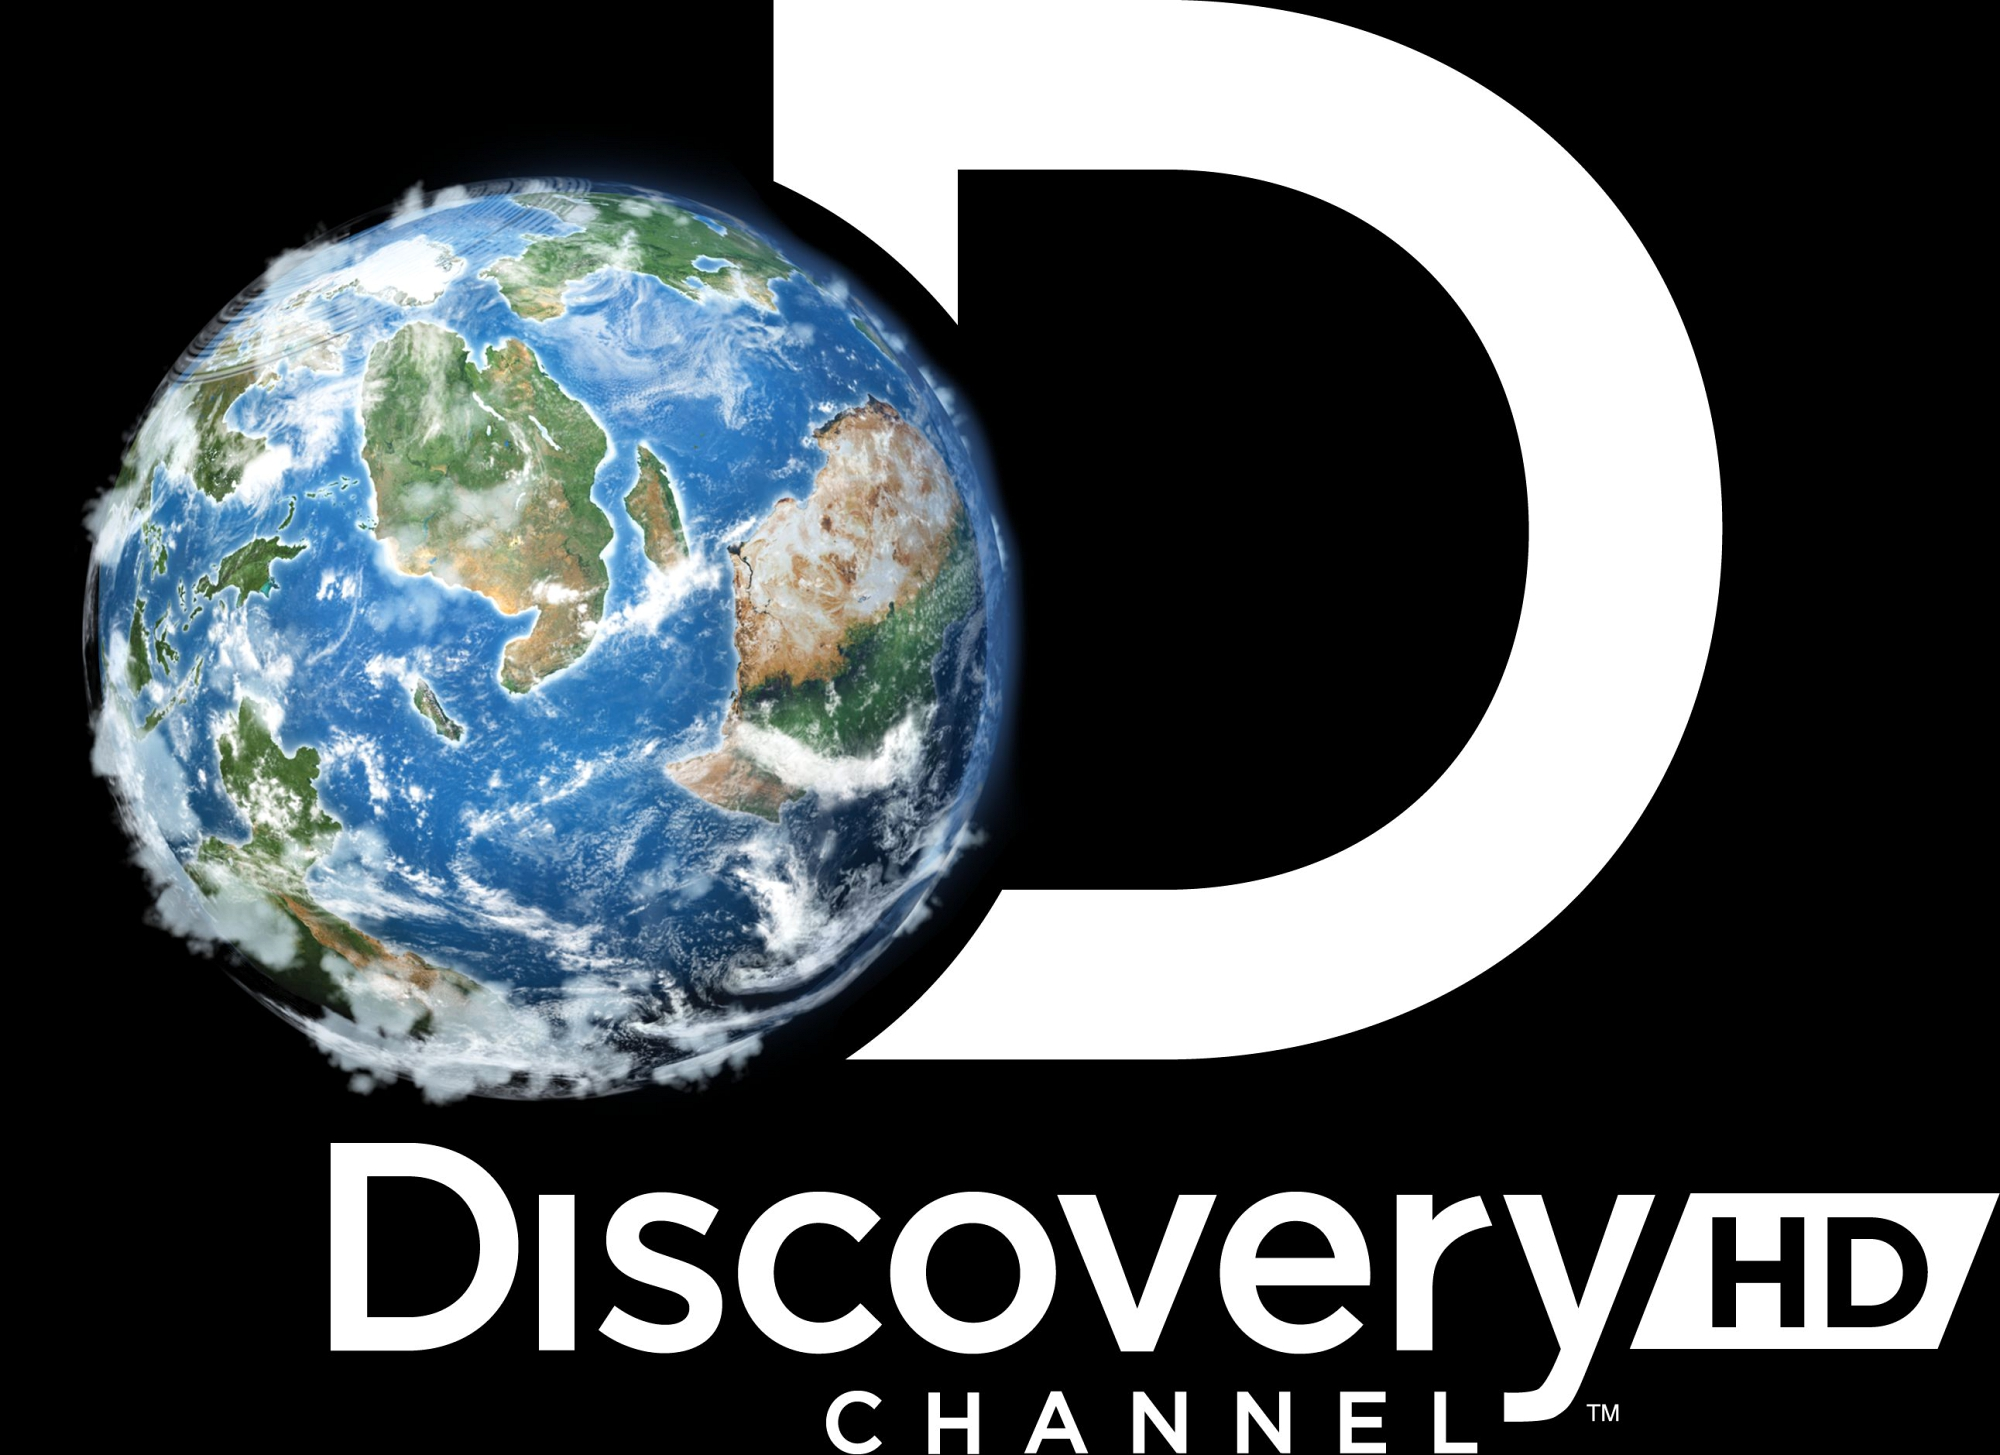 discovery science channel programs list akilmaran. Black Bedroom Furniture Sets. Home Design Ideas